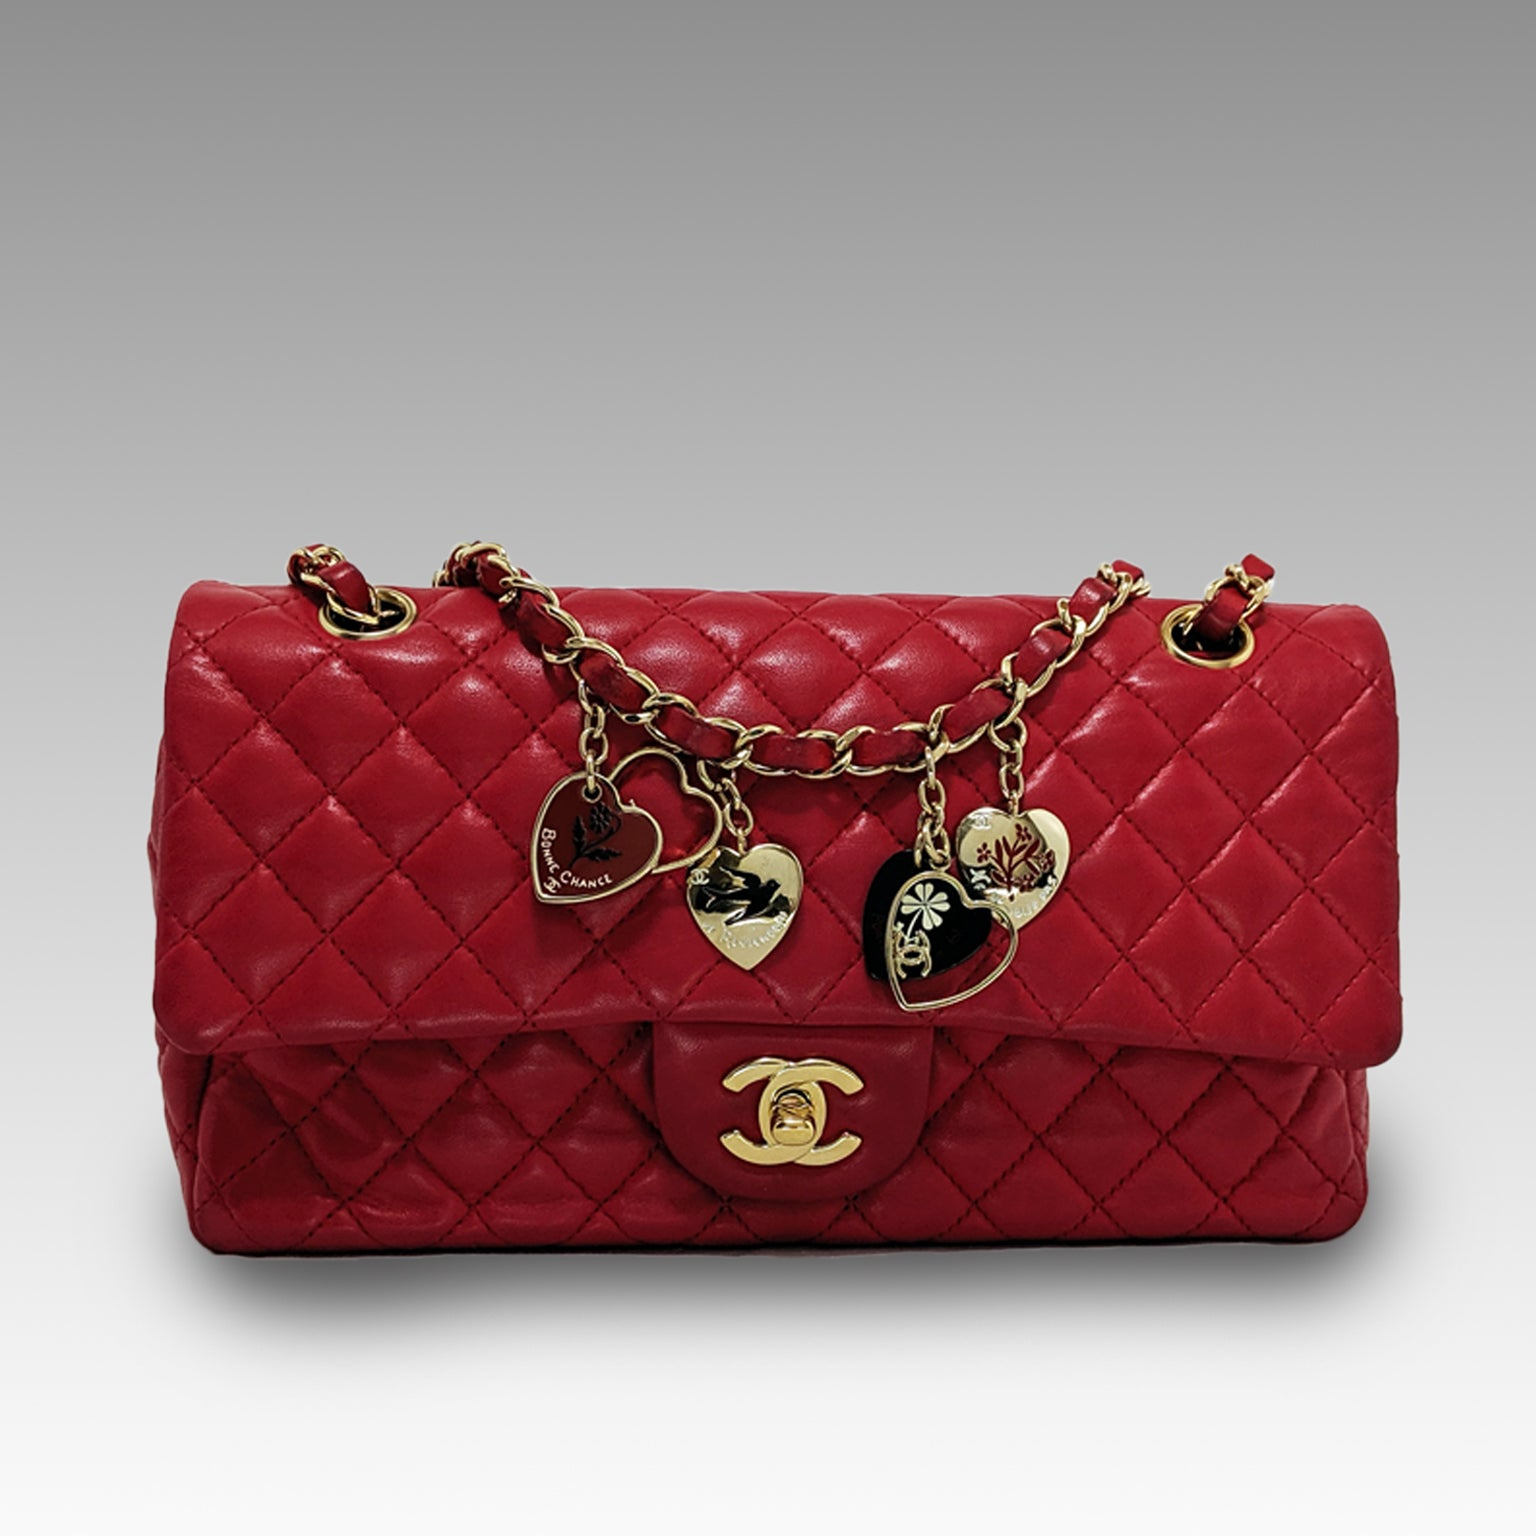 Chanel, Chanel Valentine Edition Flap Bag in Red Lambskin - CHLOEZACH